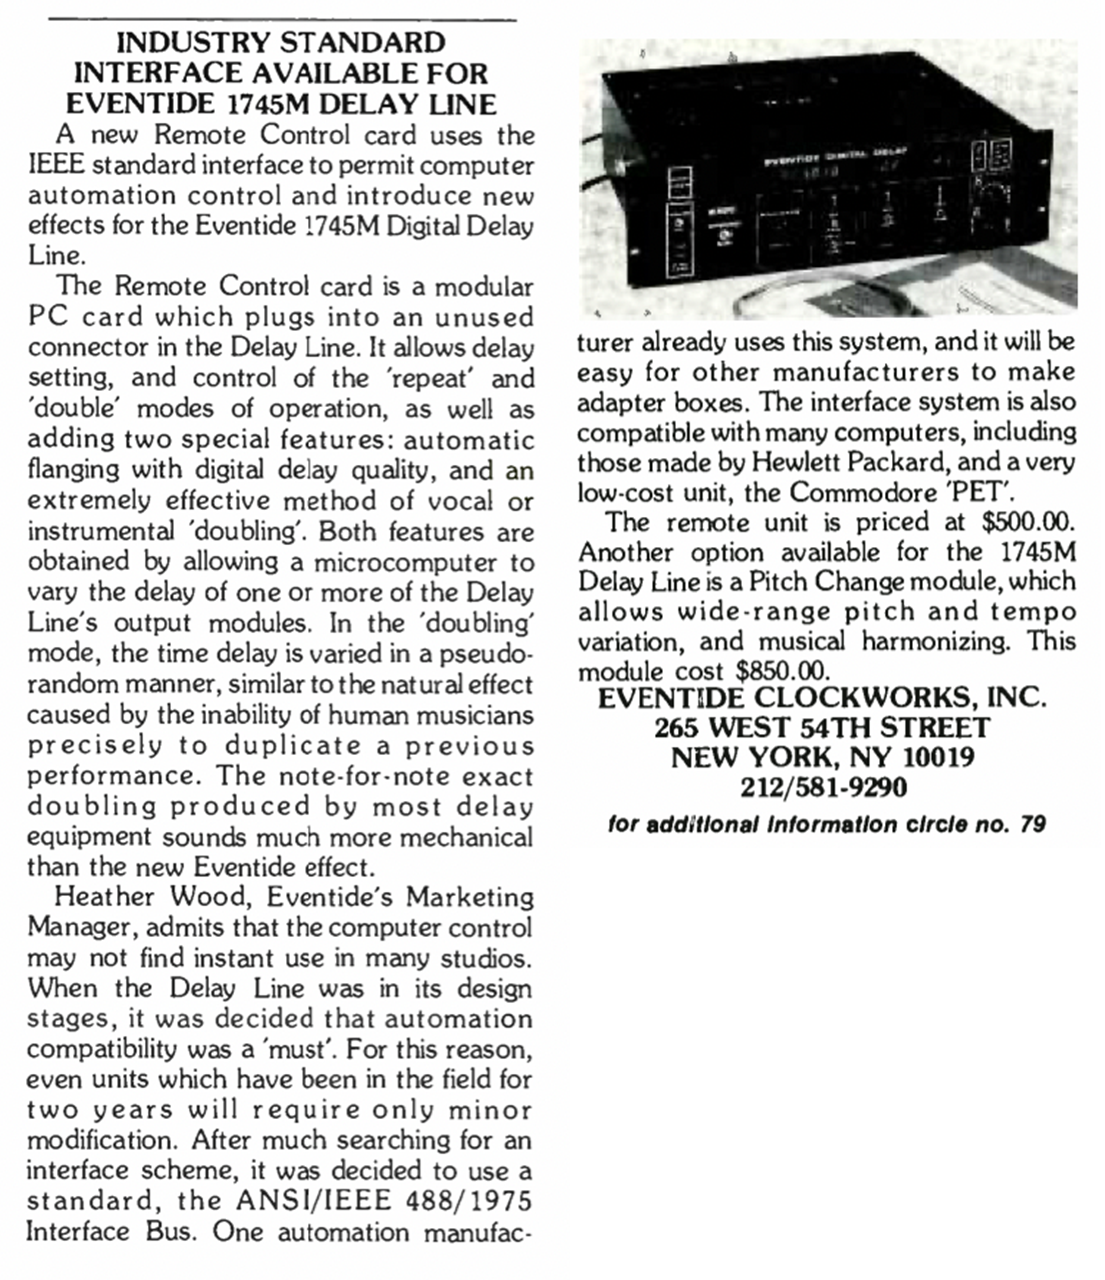 Excerpt from REP Magazine (February 1978 Issue)